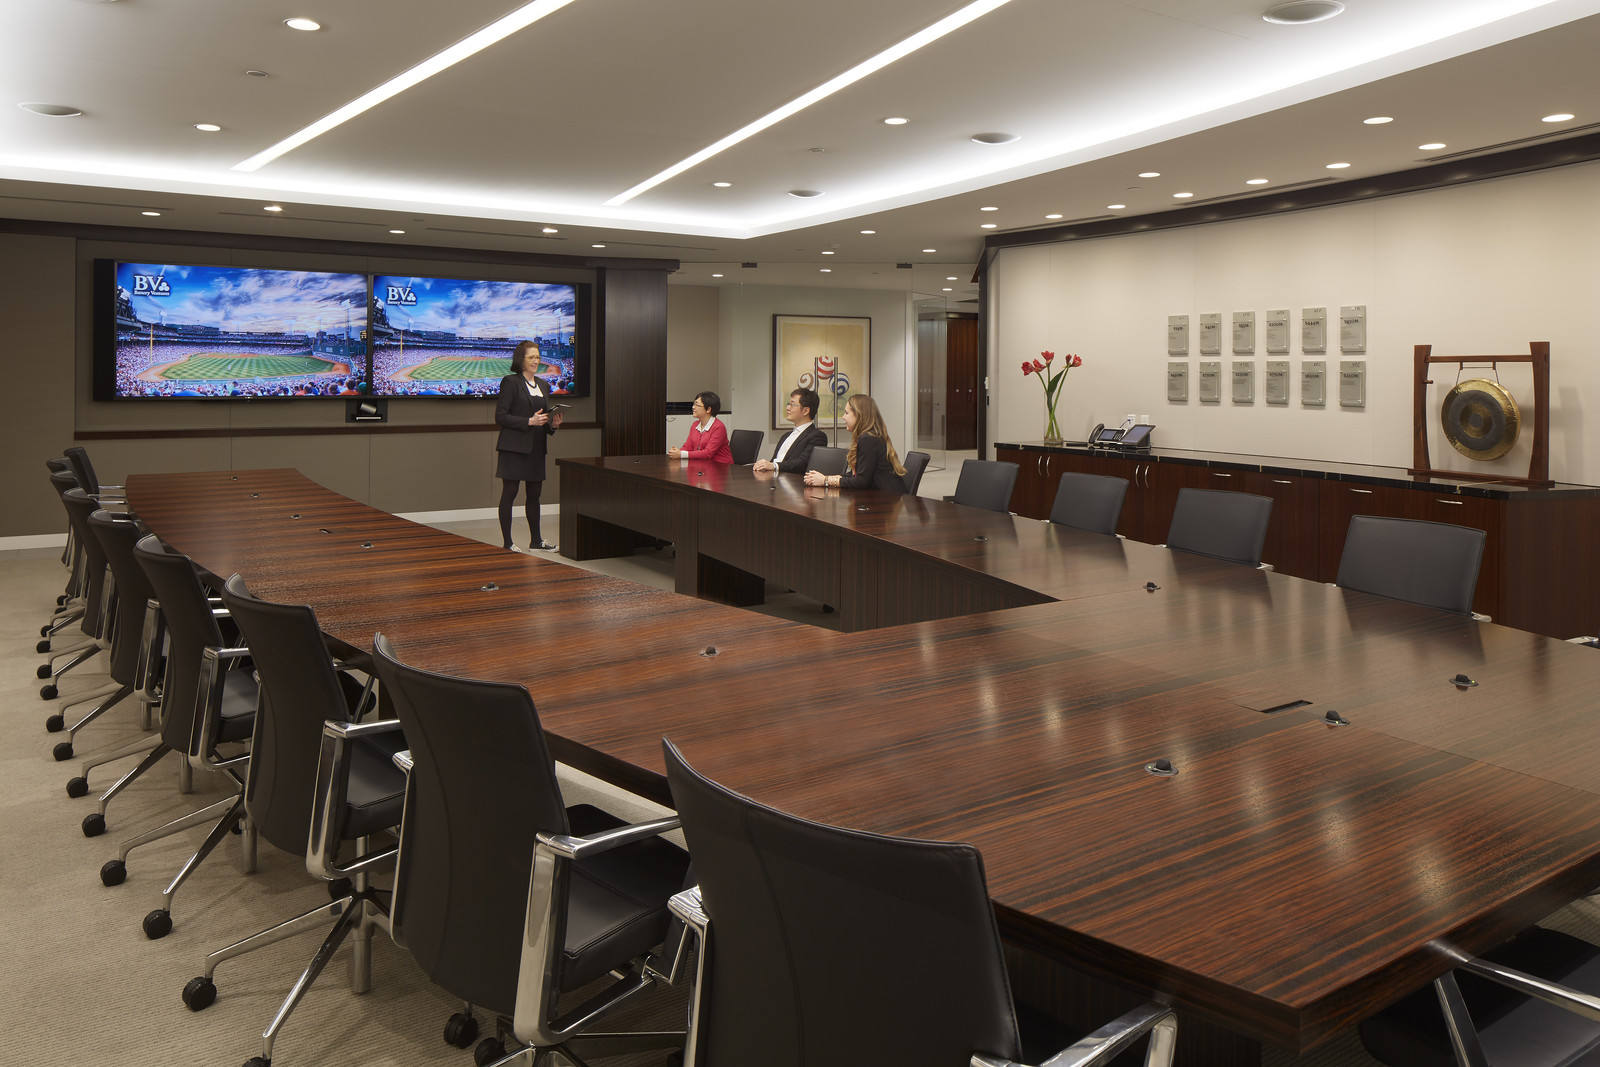 Unique custom boardroom table designed by BH+A steps out of the traditional and into a more collaborative boardroom.